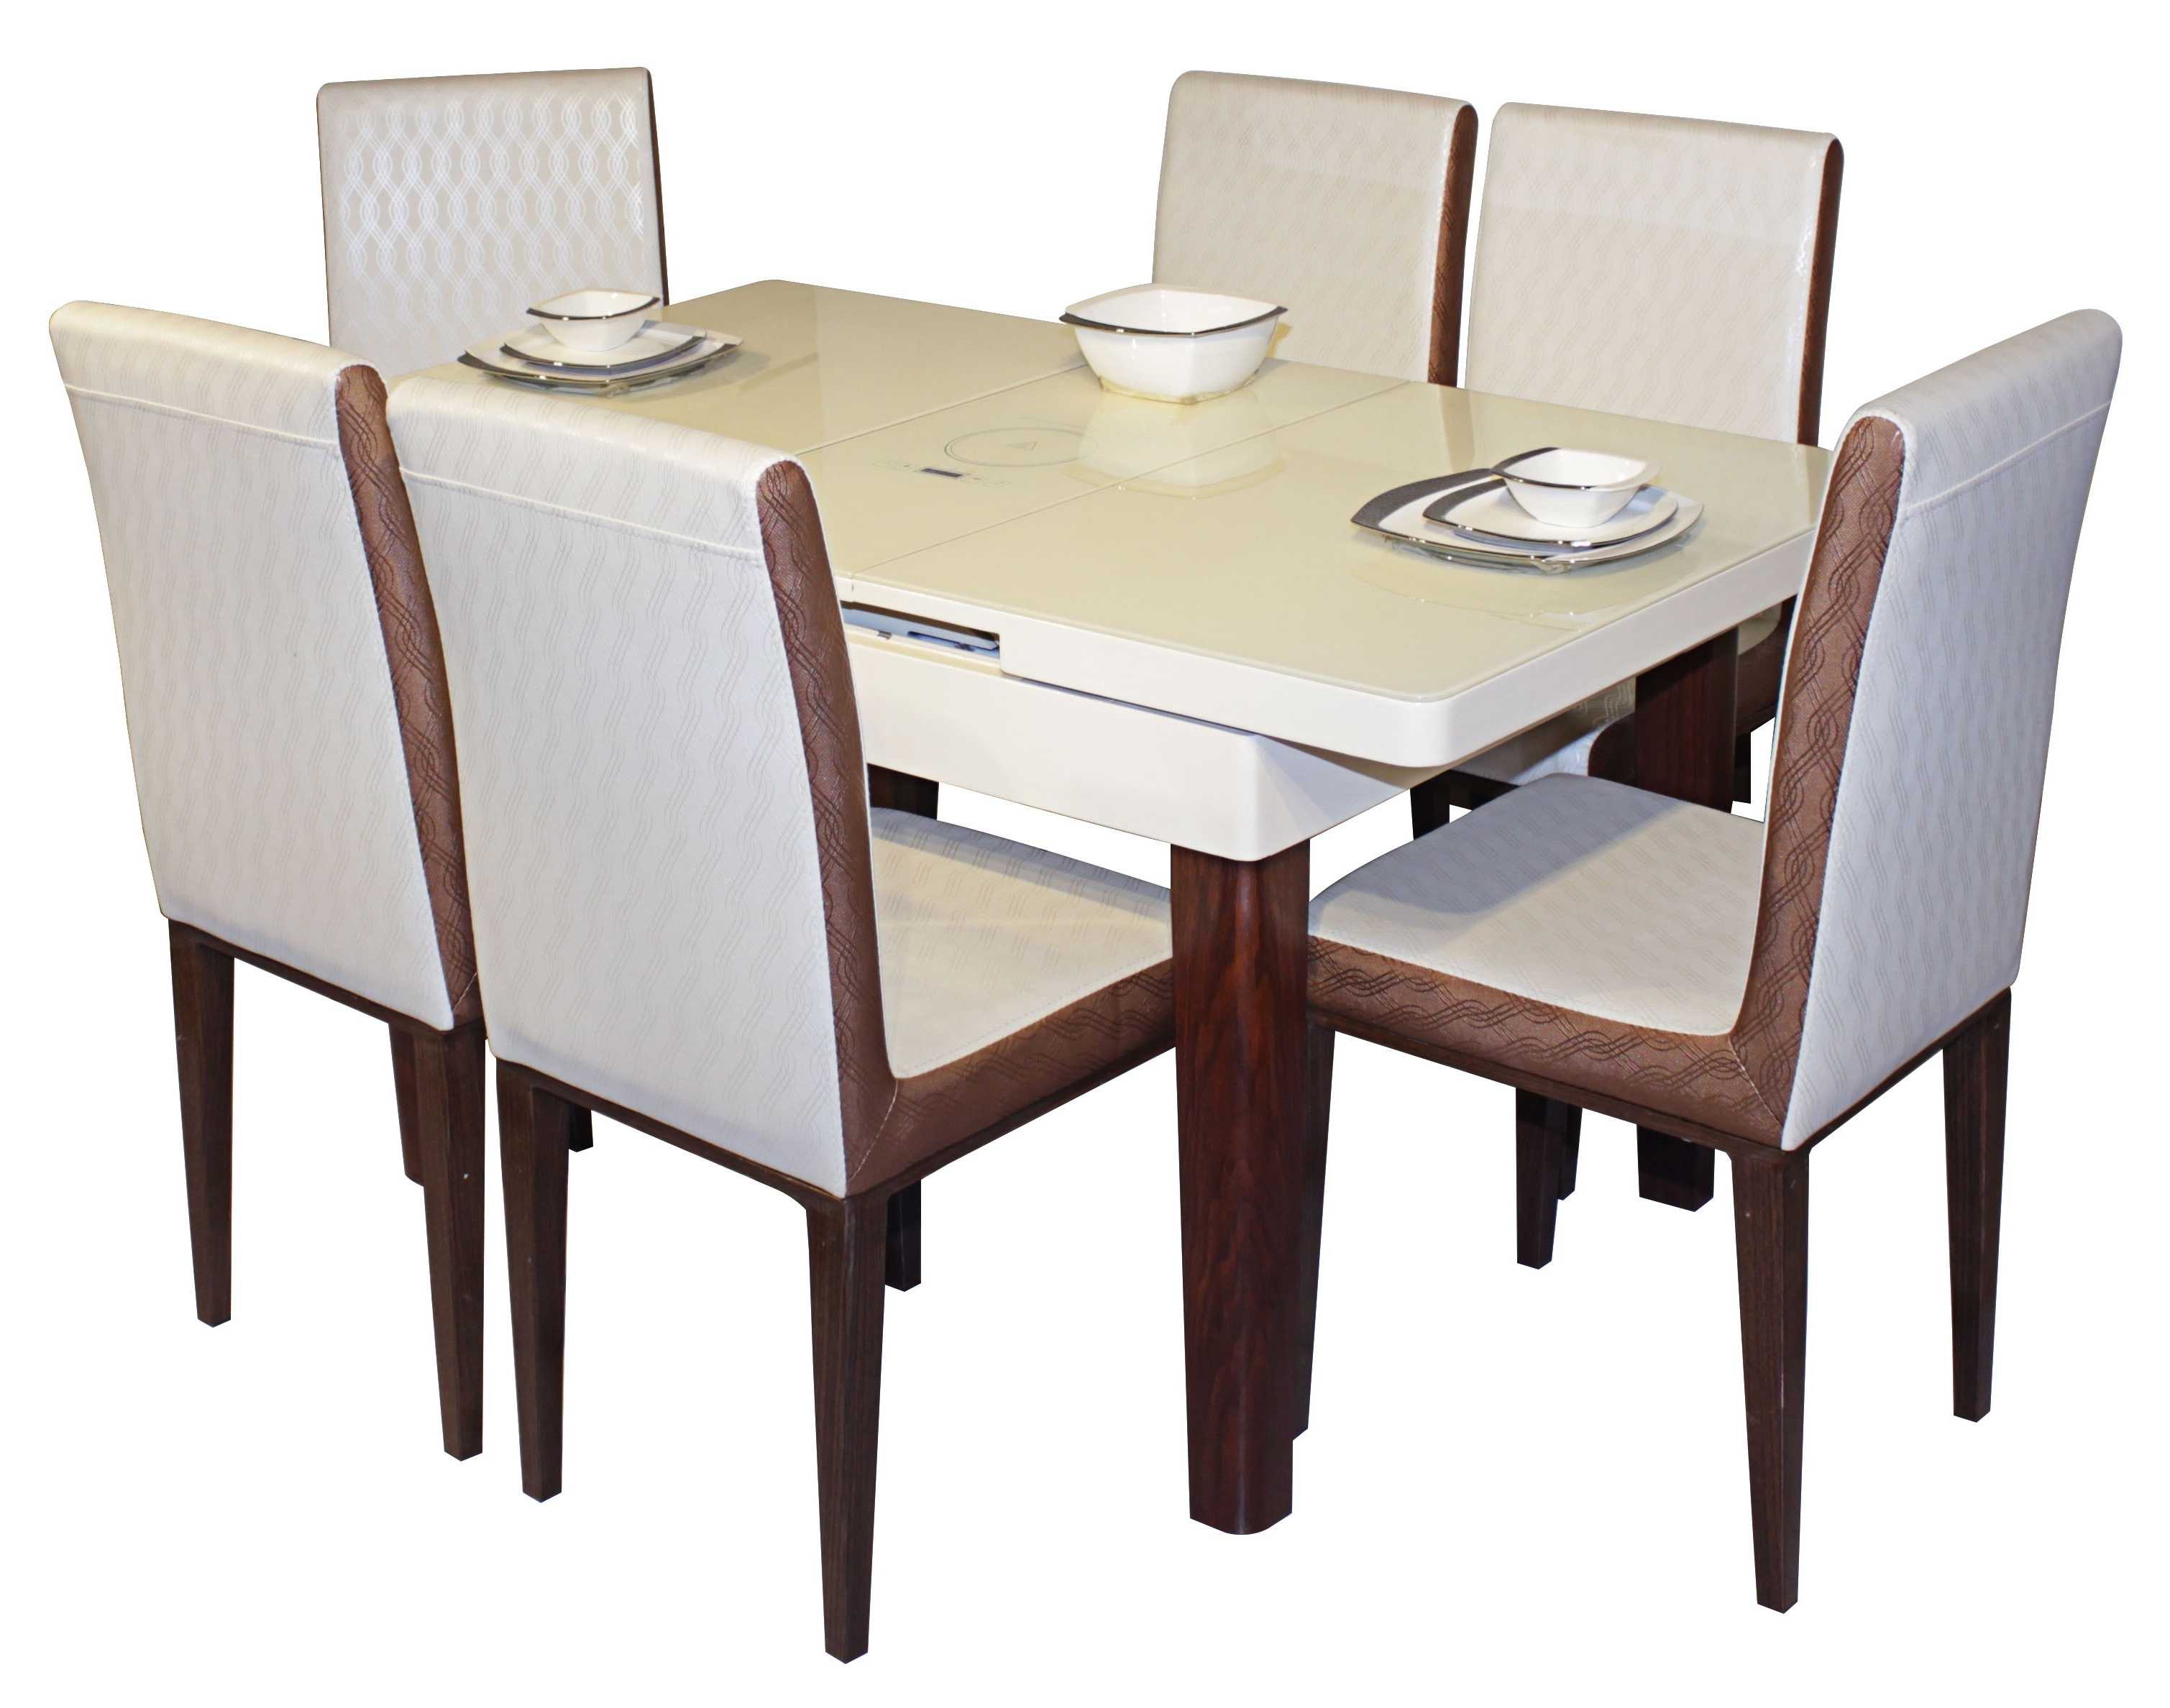 Six Seater Dining Tables In Best And Newest 6 Seater Dining Table And Chairs 6 Seater Dining Table And Chairs India (View 18 of 25)